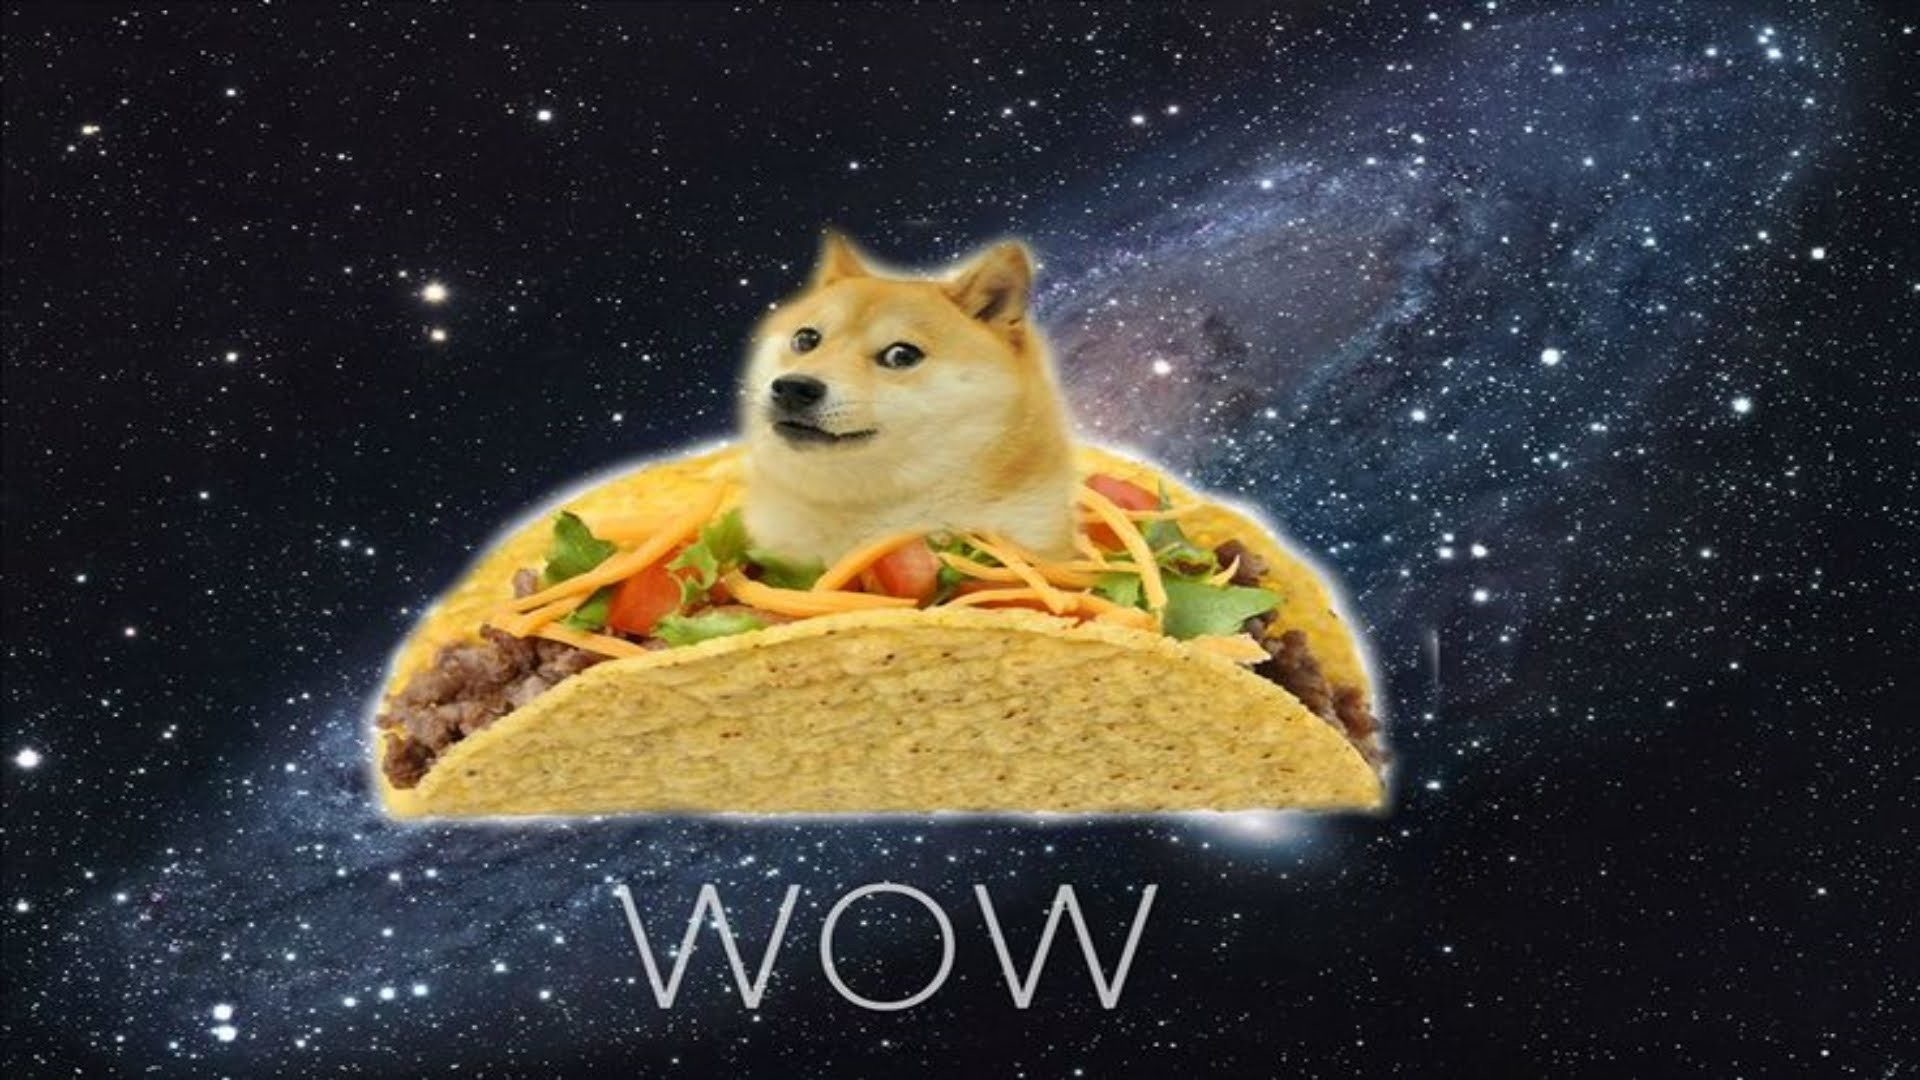 Doge and His Raining Tacos